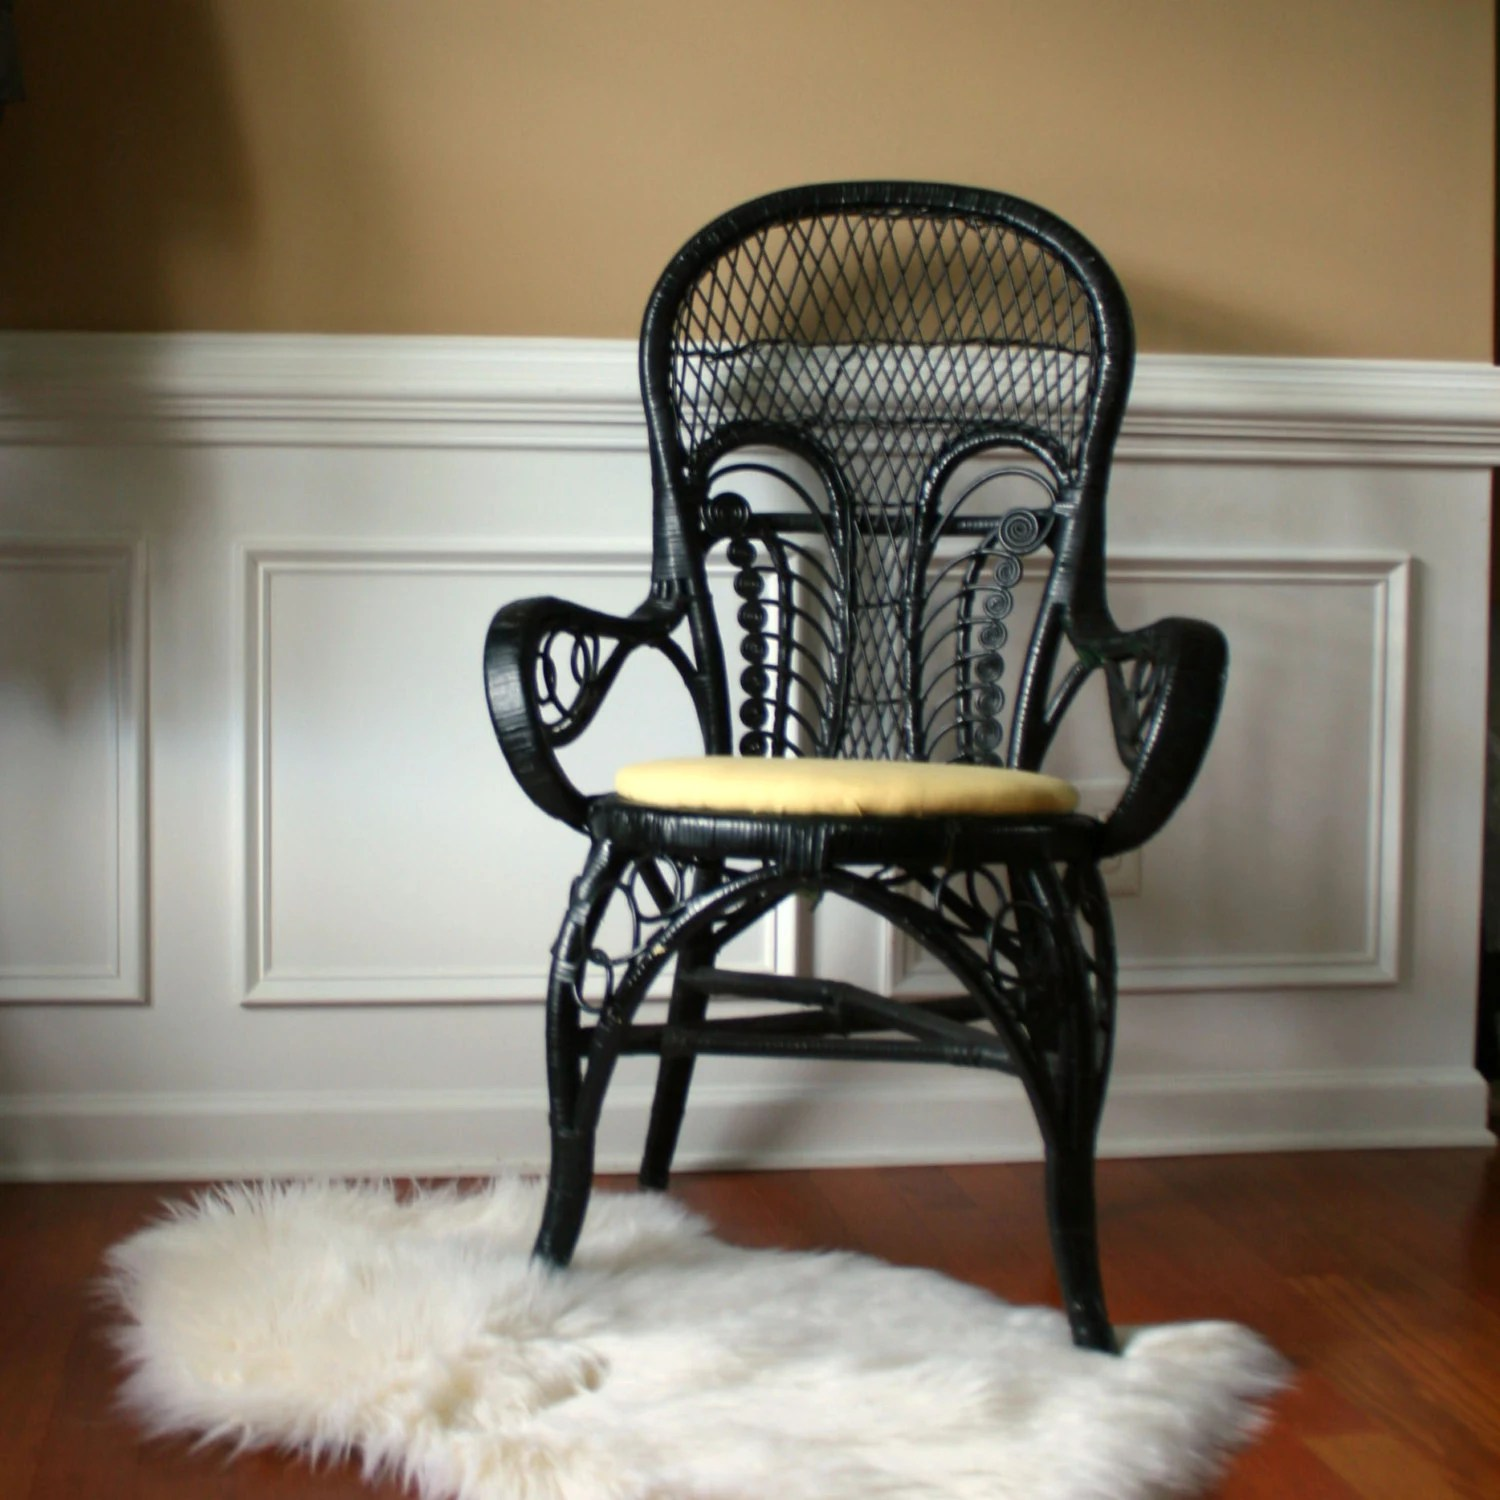 Vintage Rattan Chairs Vintage Modern Rattan Arm Chair Black Chinoiserie Accent Desk